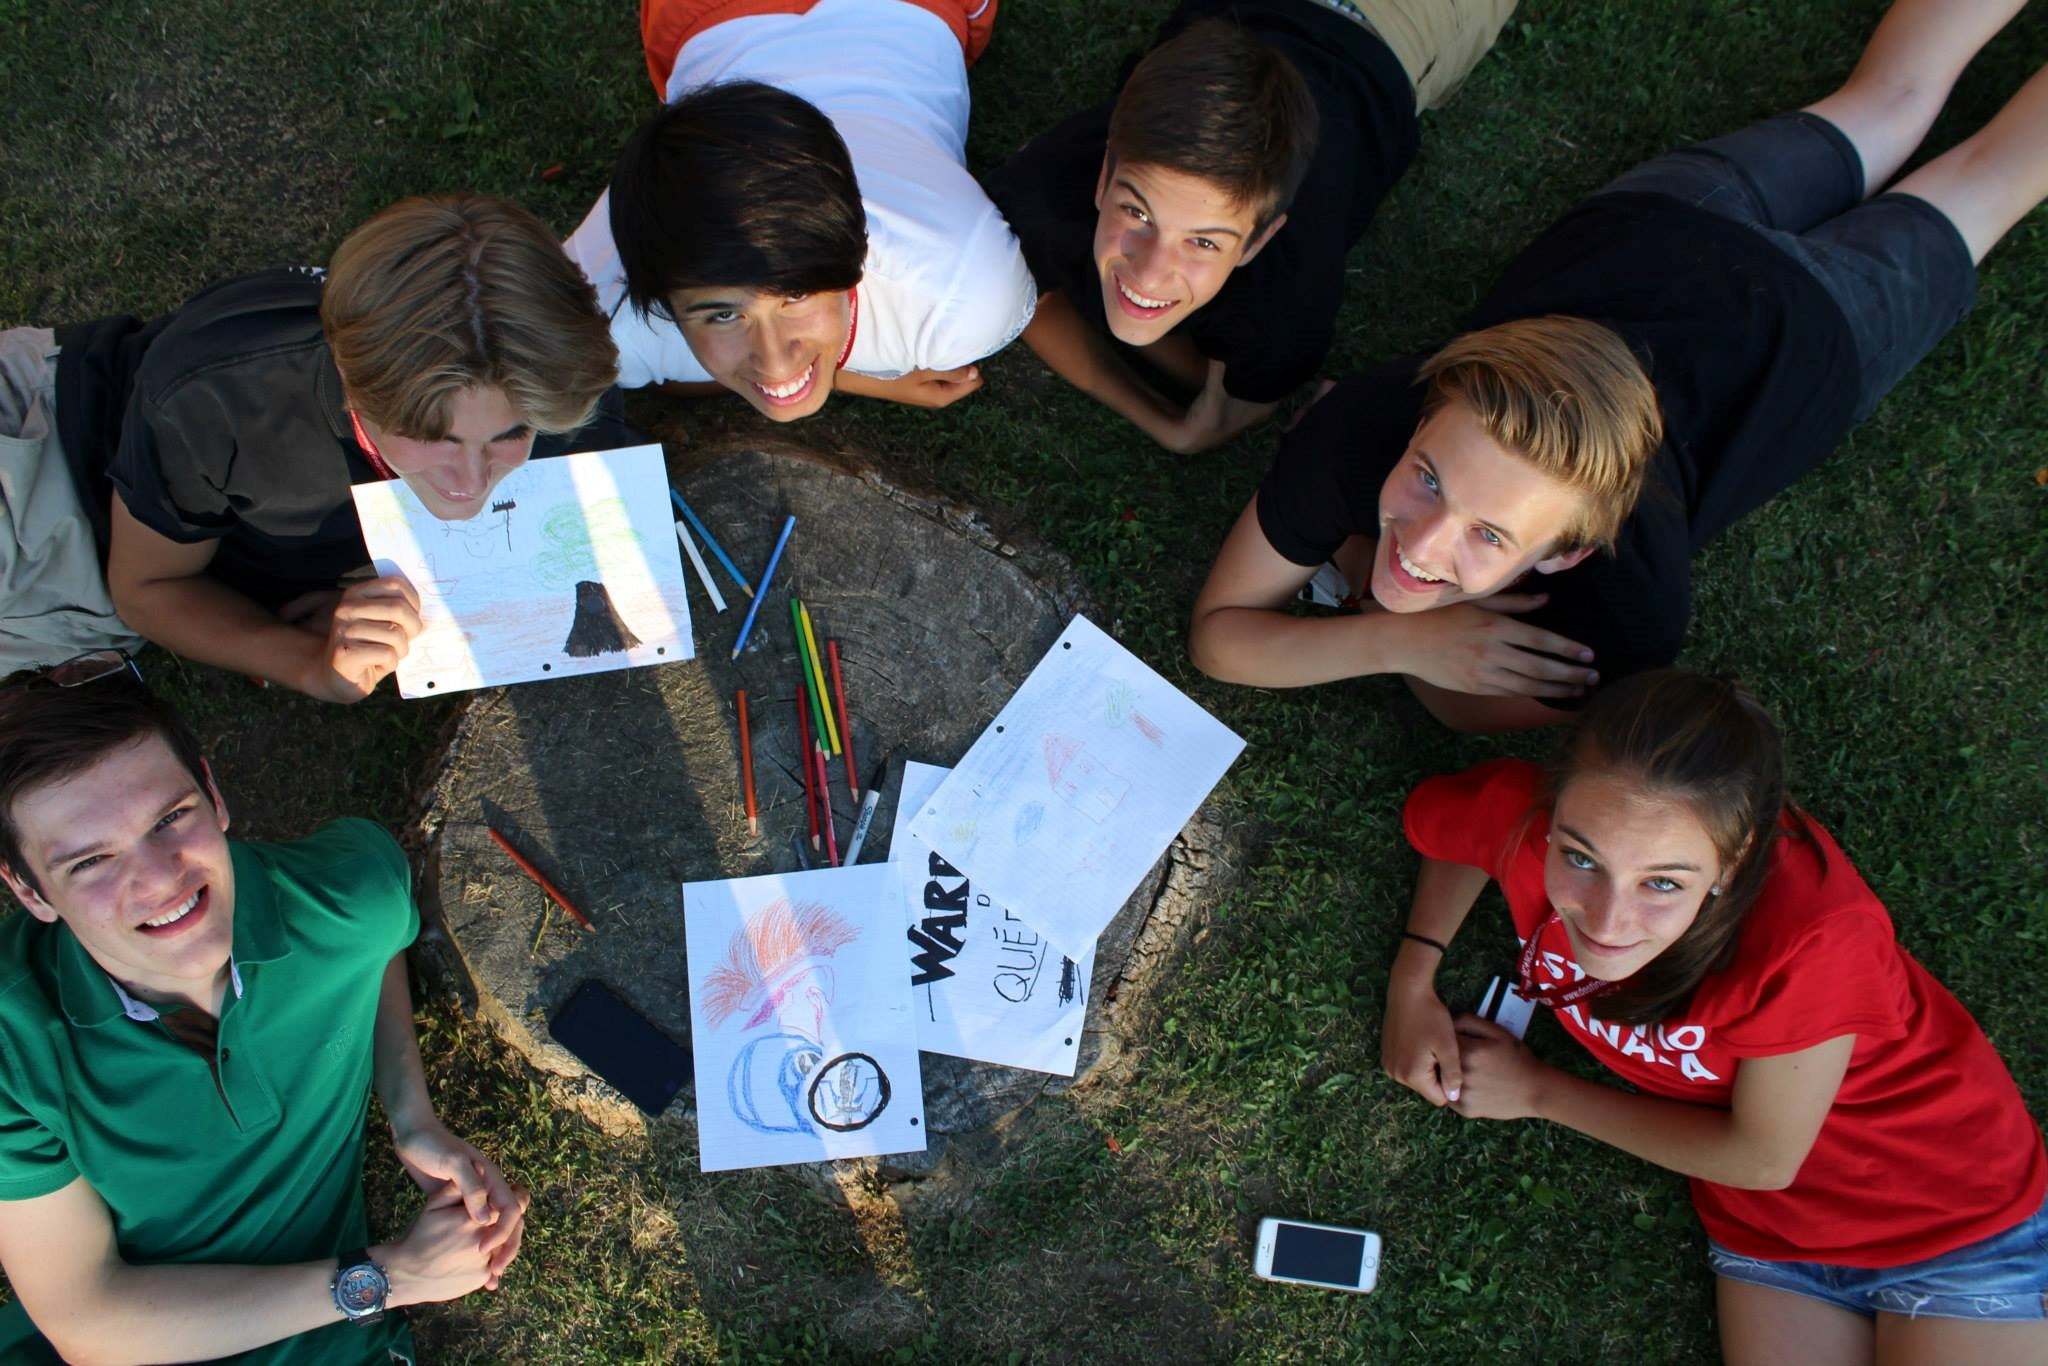 Students work together on English language projects in Destination Canada's English Program